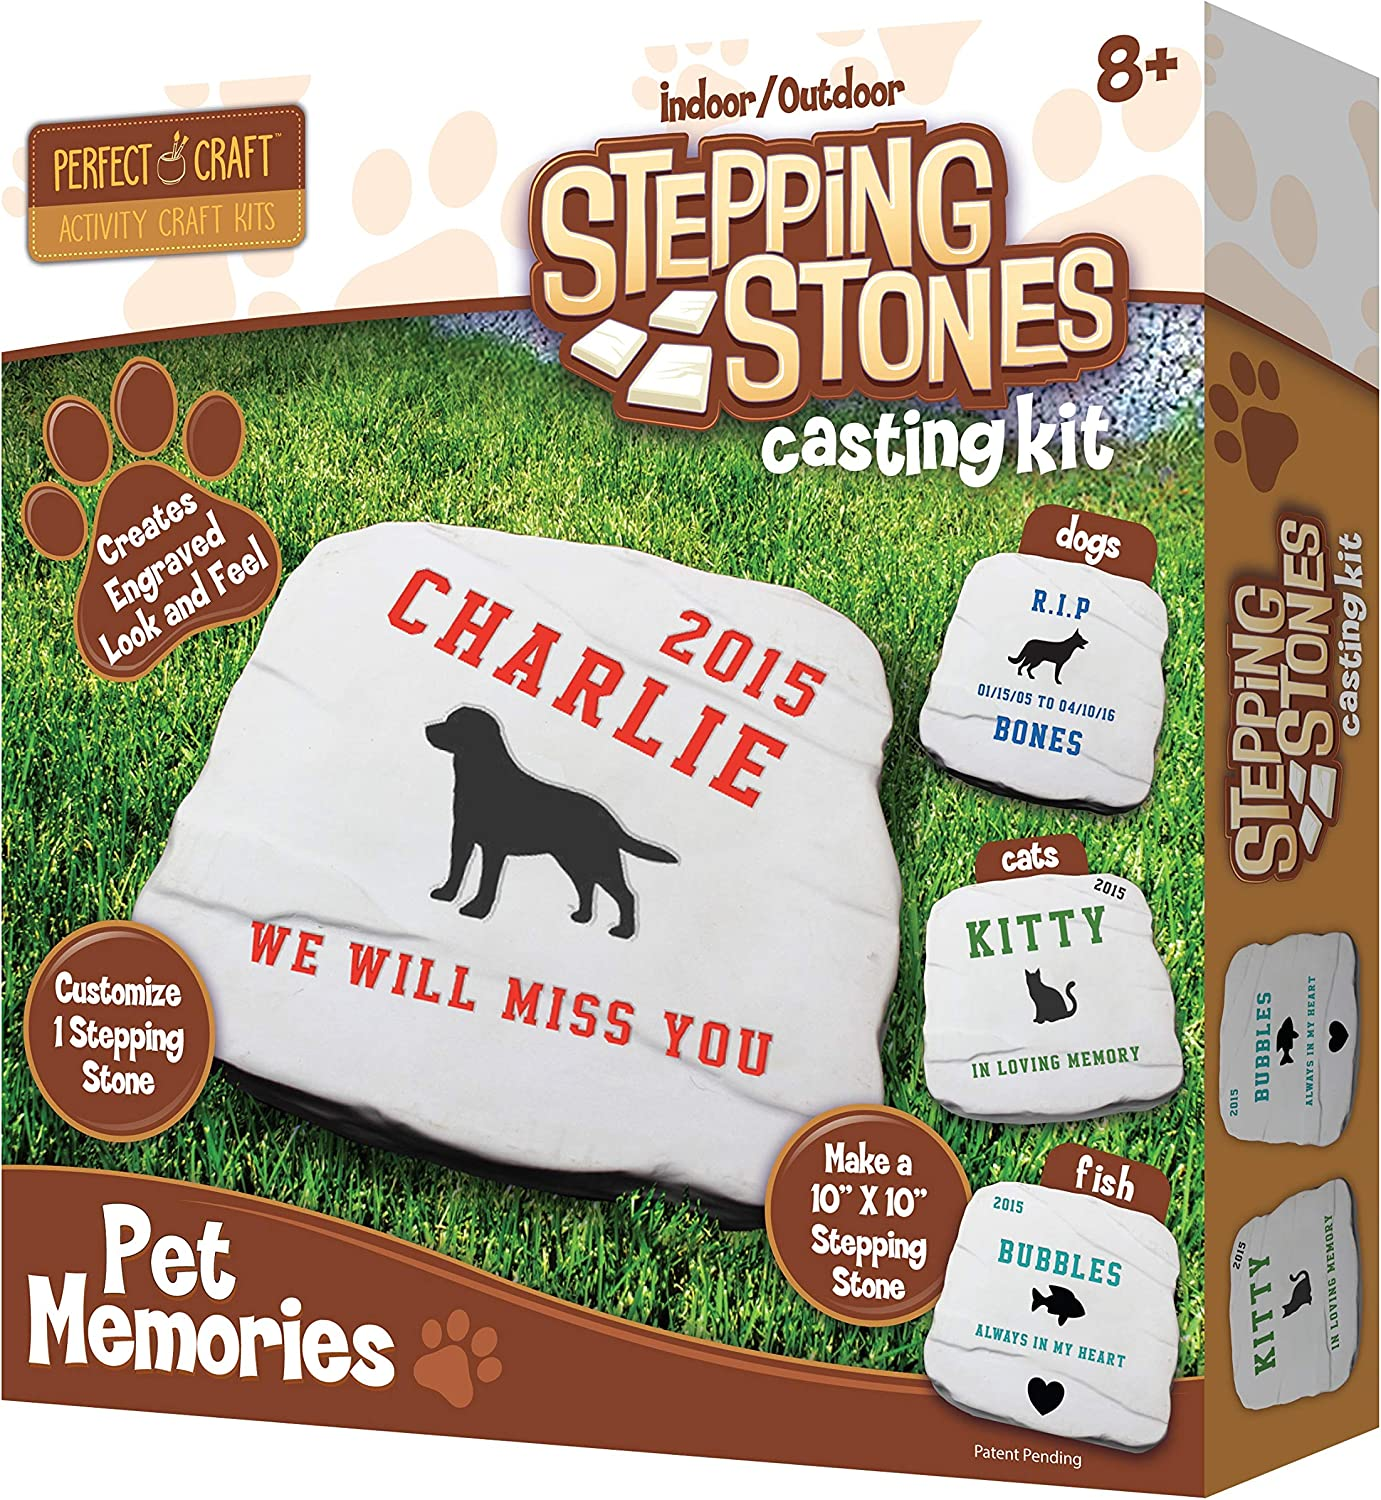 Perfect Craft Cast & Paint Pet Memories Memorial Stone Kit with Perfect Cast Casting Material and Reusable Mold